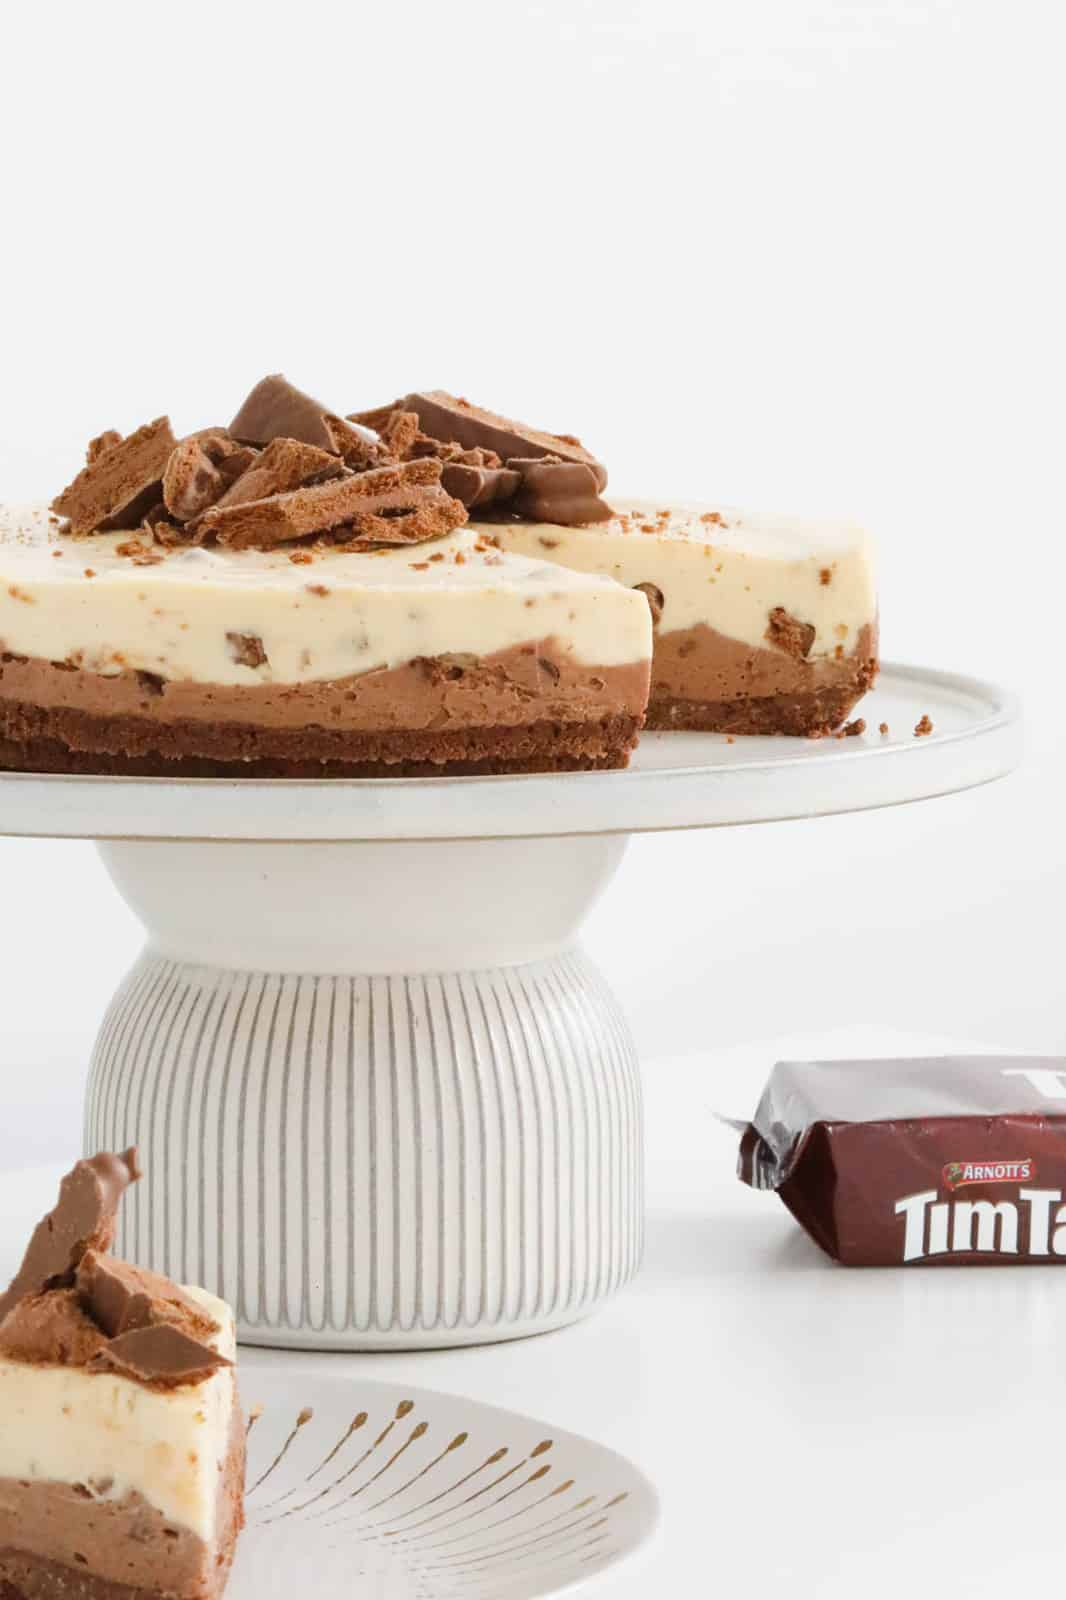 A double layered white and milk chocolate cheesecake on a cake stand, with a slice removed.